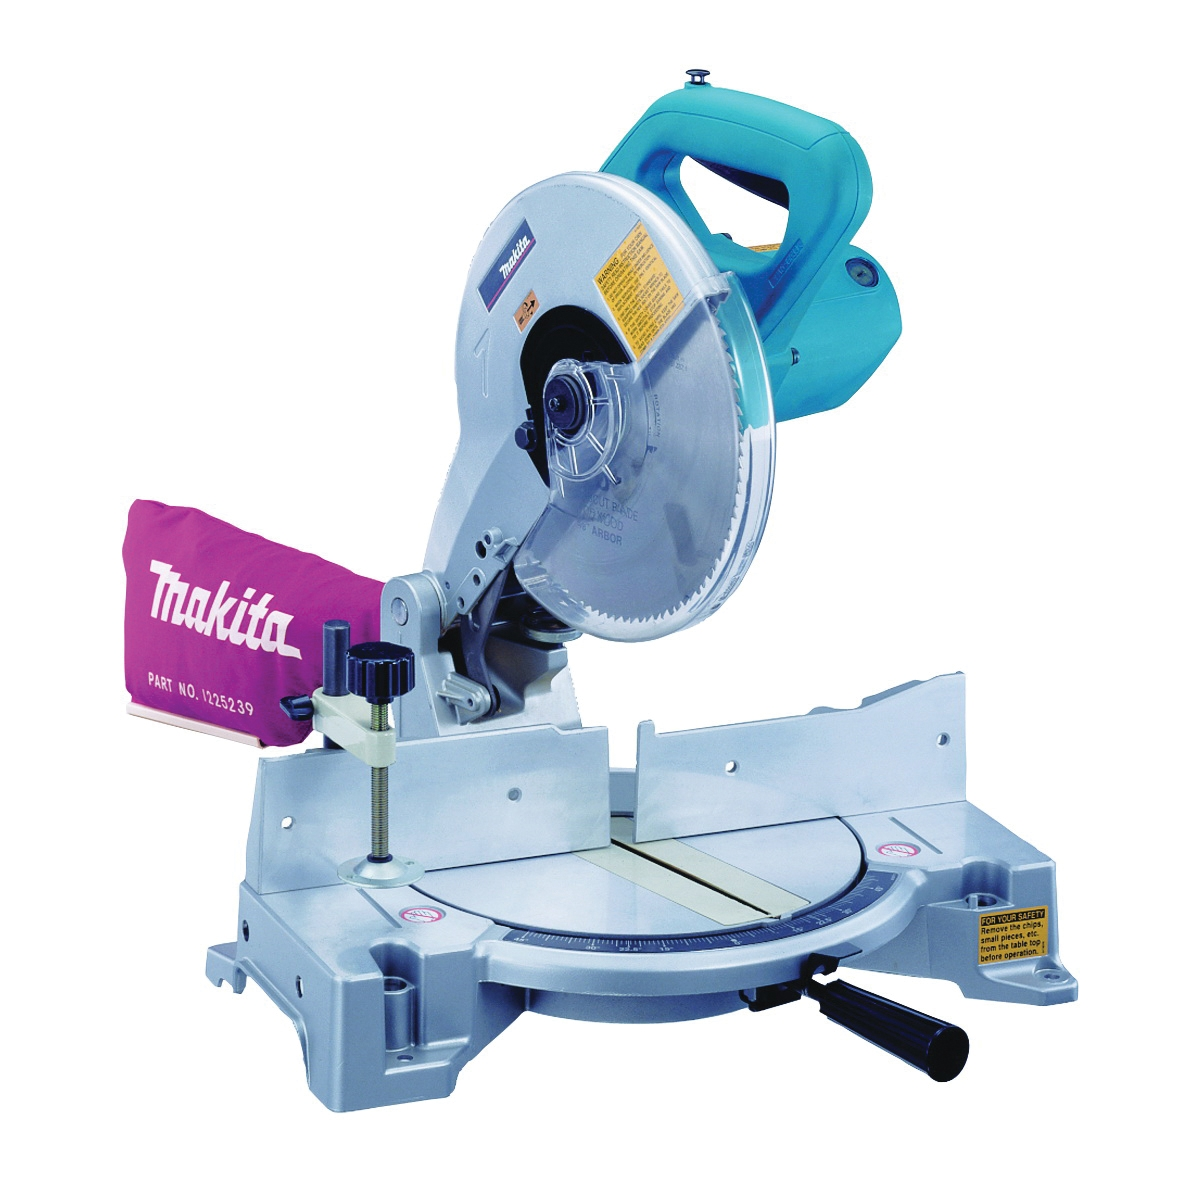 Picture of Makita LS1040 Miter Saw, 10 in Dia Blade, 1-3/8 x 3-5/8 in deg at 45, 2-3/4 x 5-1/8 in at 90 deg Cutting Capacity